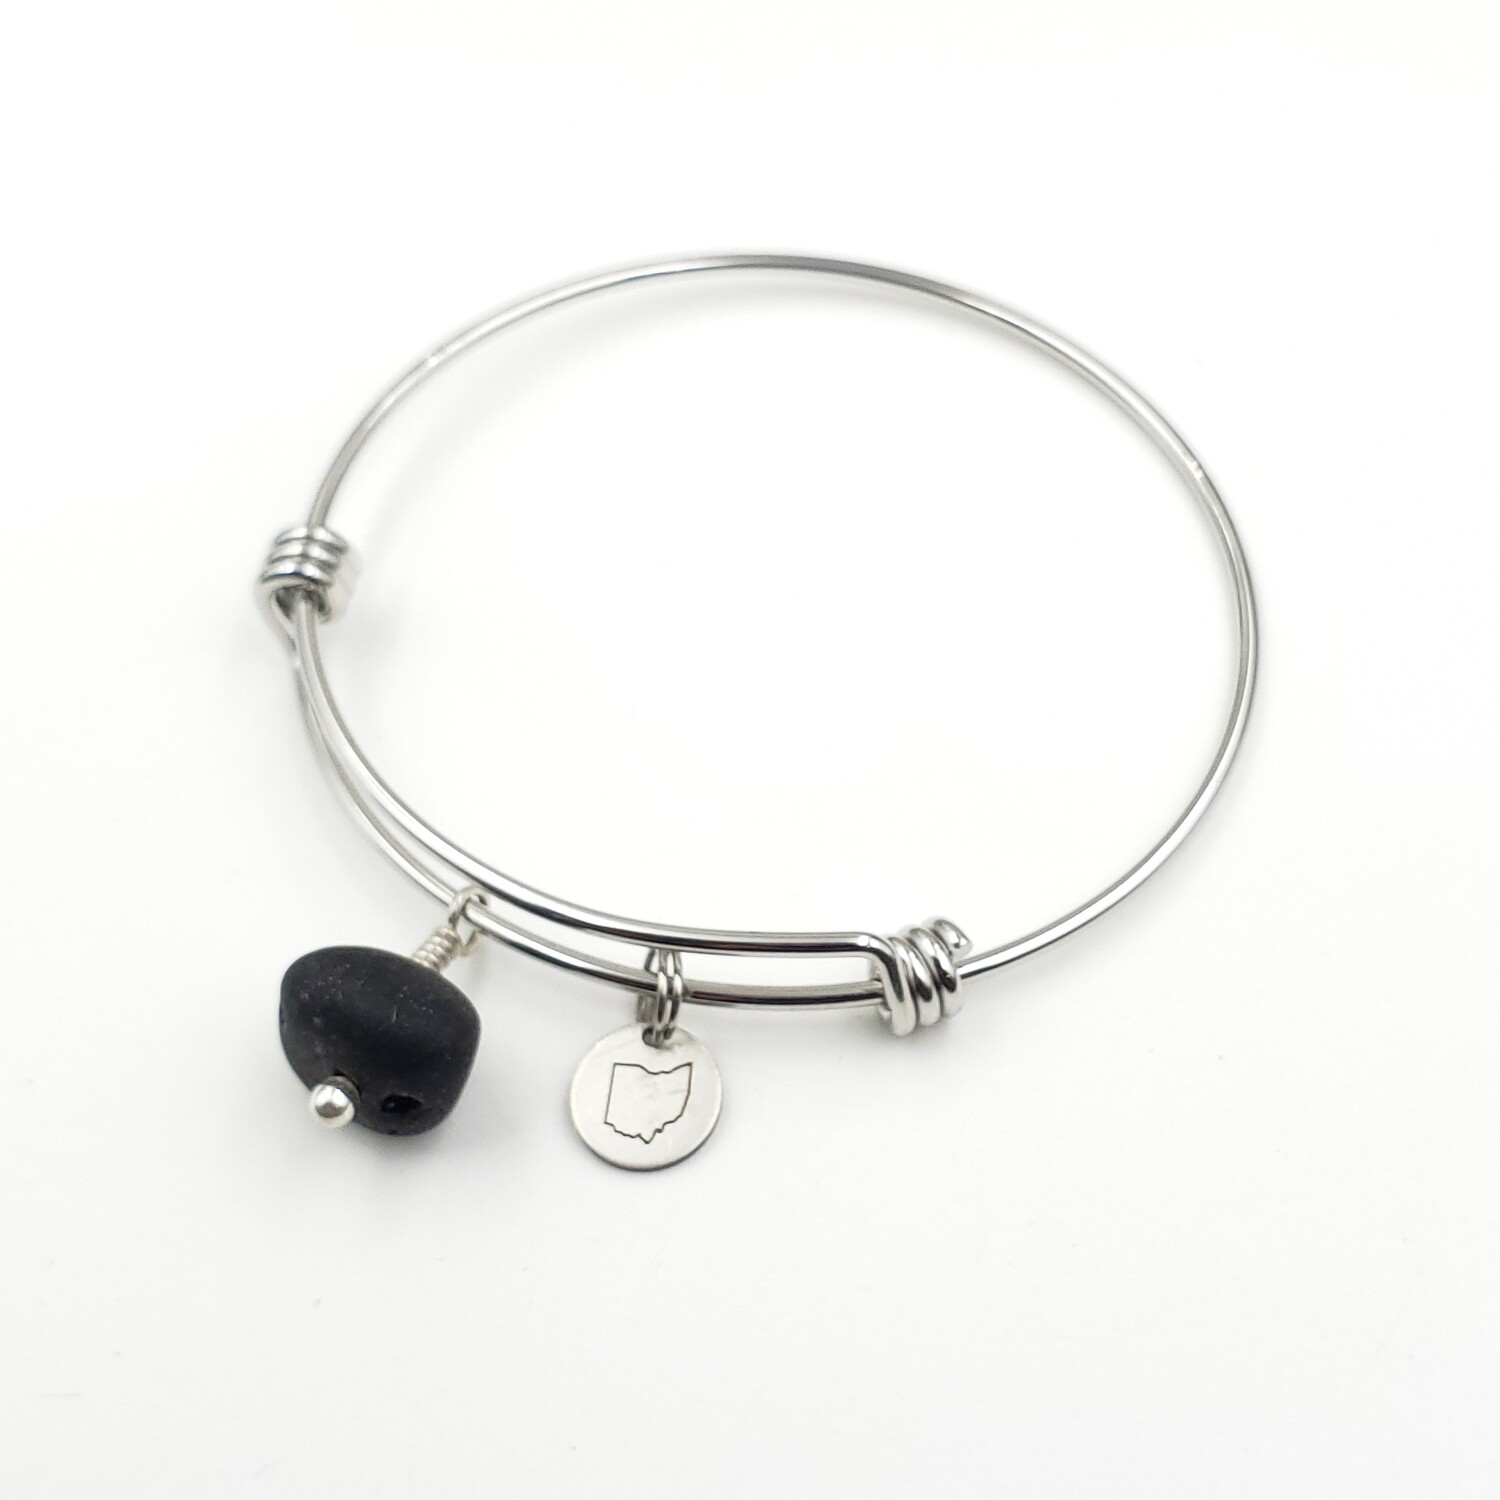 Bangle Bracelet with Stamped State of Ohio Charm and Black Vitrite Lake Erie Beach Glass